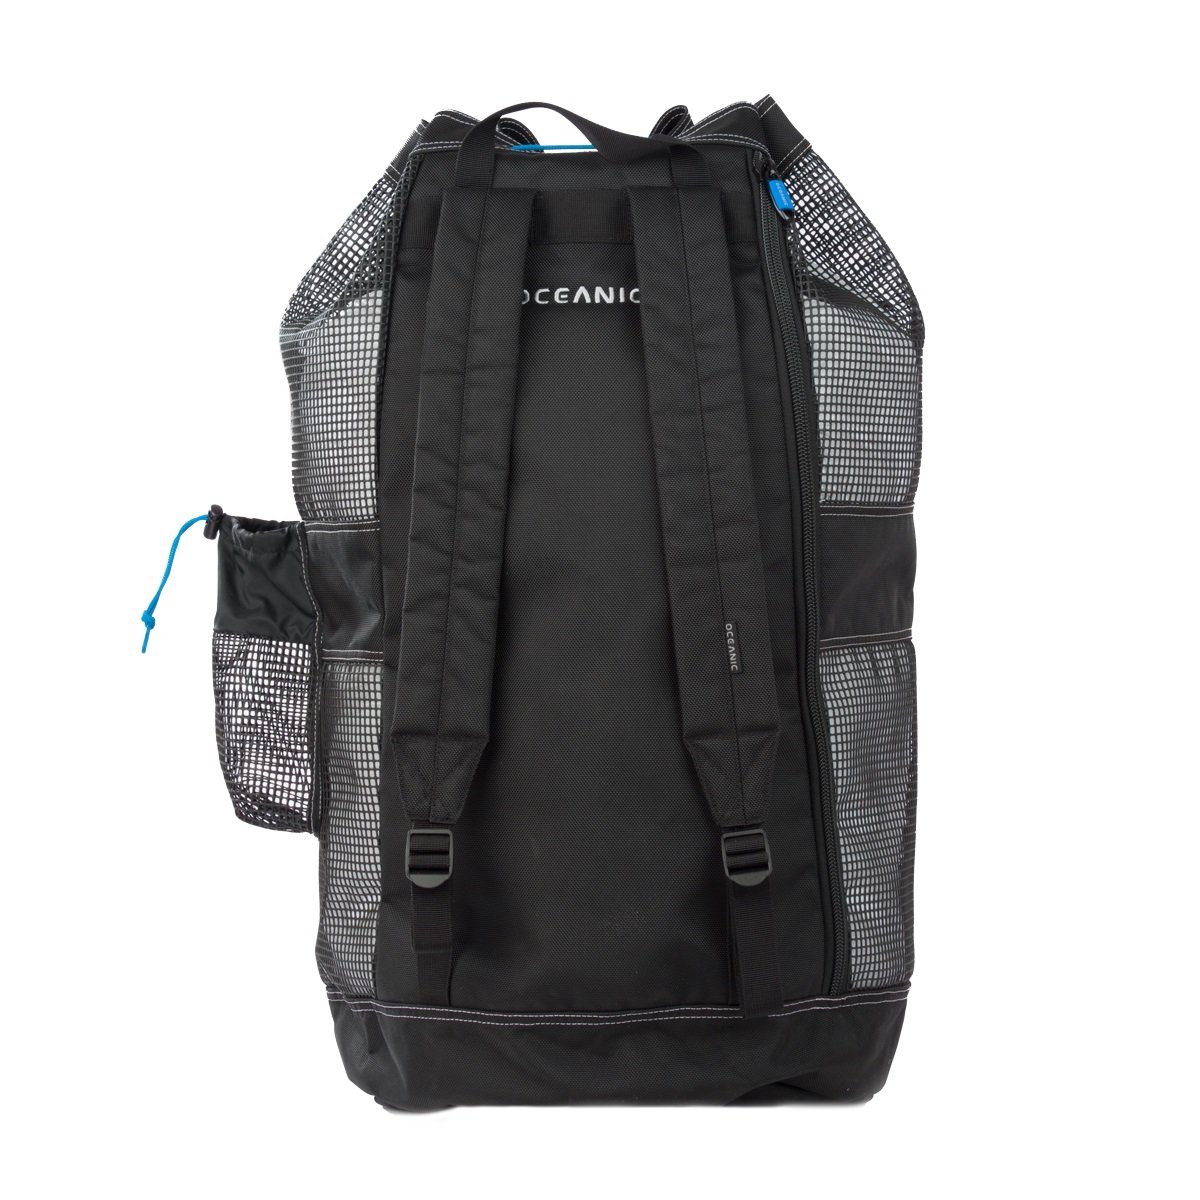 Oceanic Mesh Backpack Gear Bag